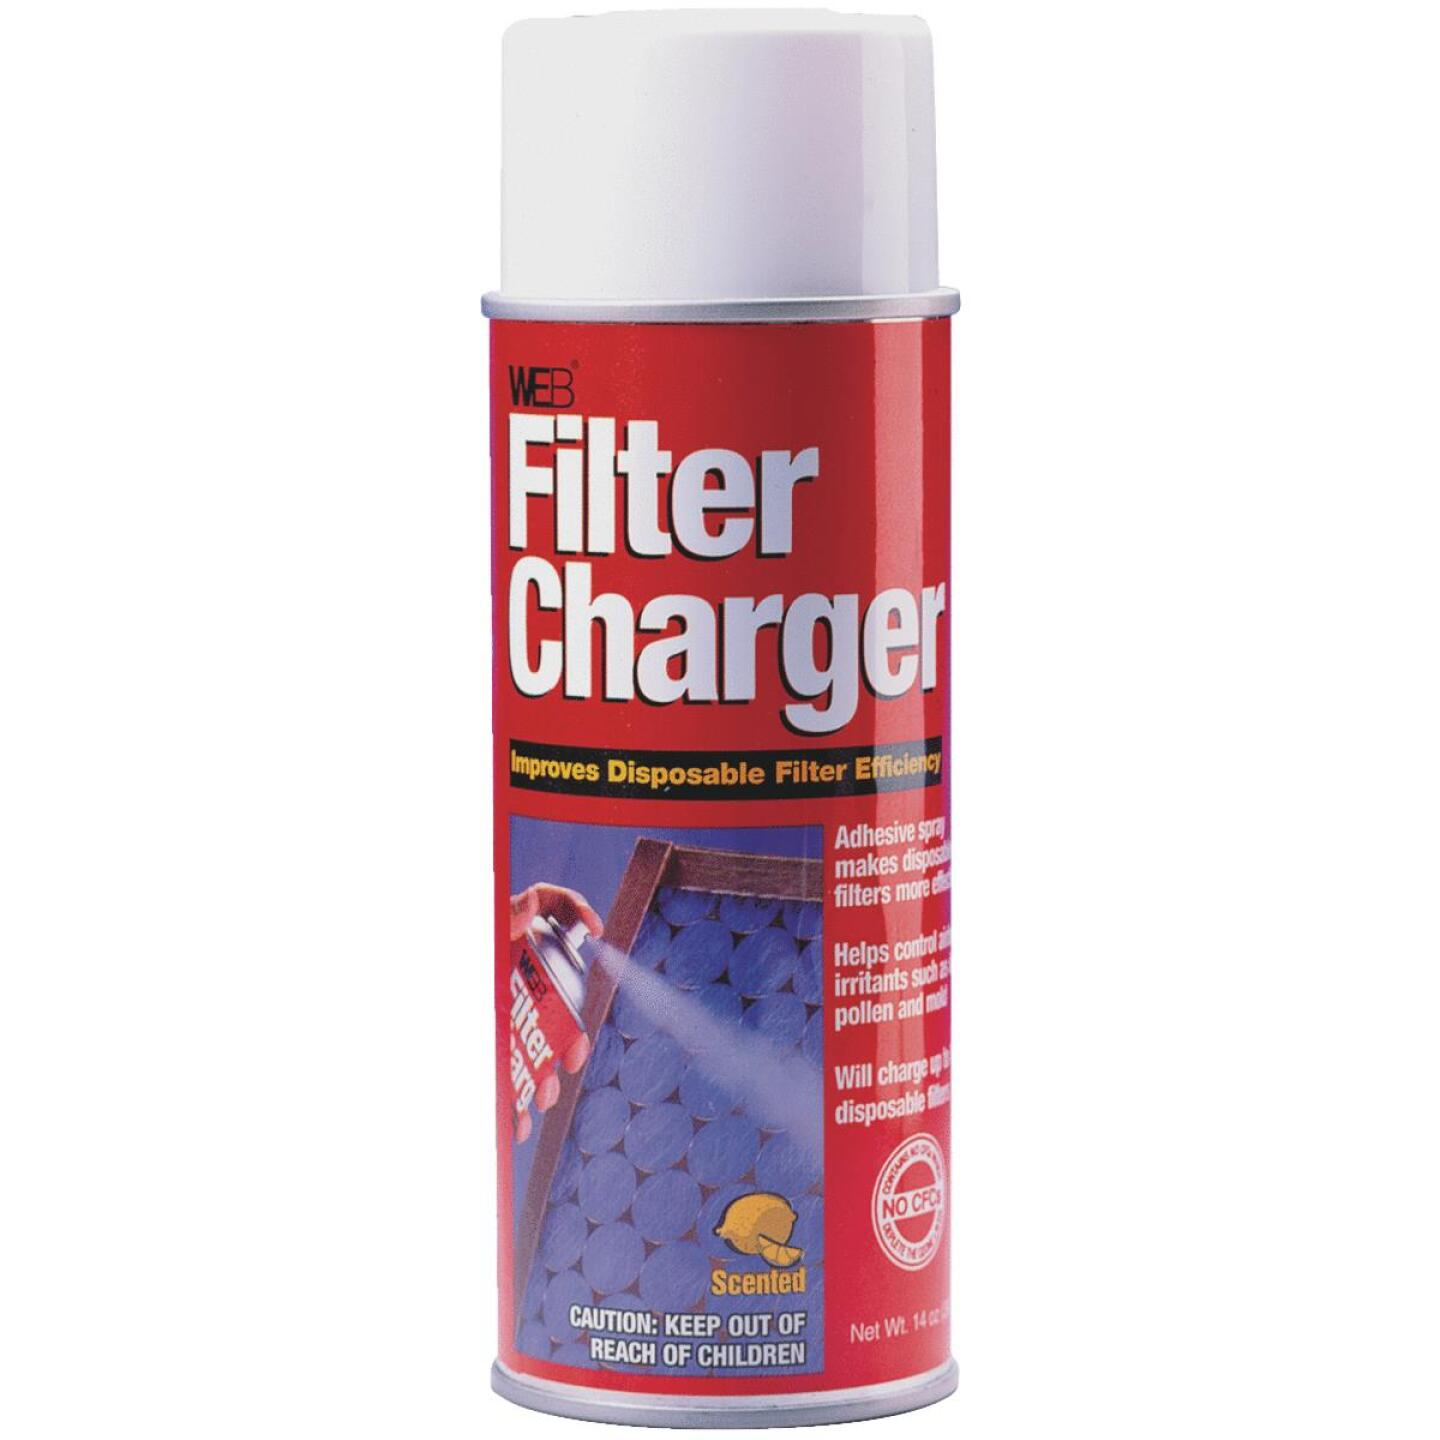 Web 14 Oz. Aerosol Filter Charger Furnace/Air Conditioner Filter Spray Image 1